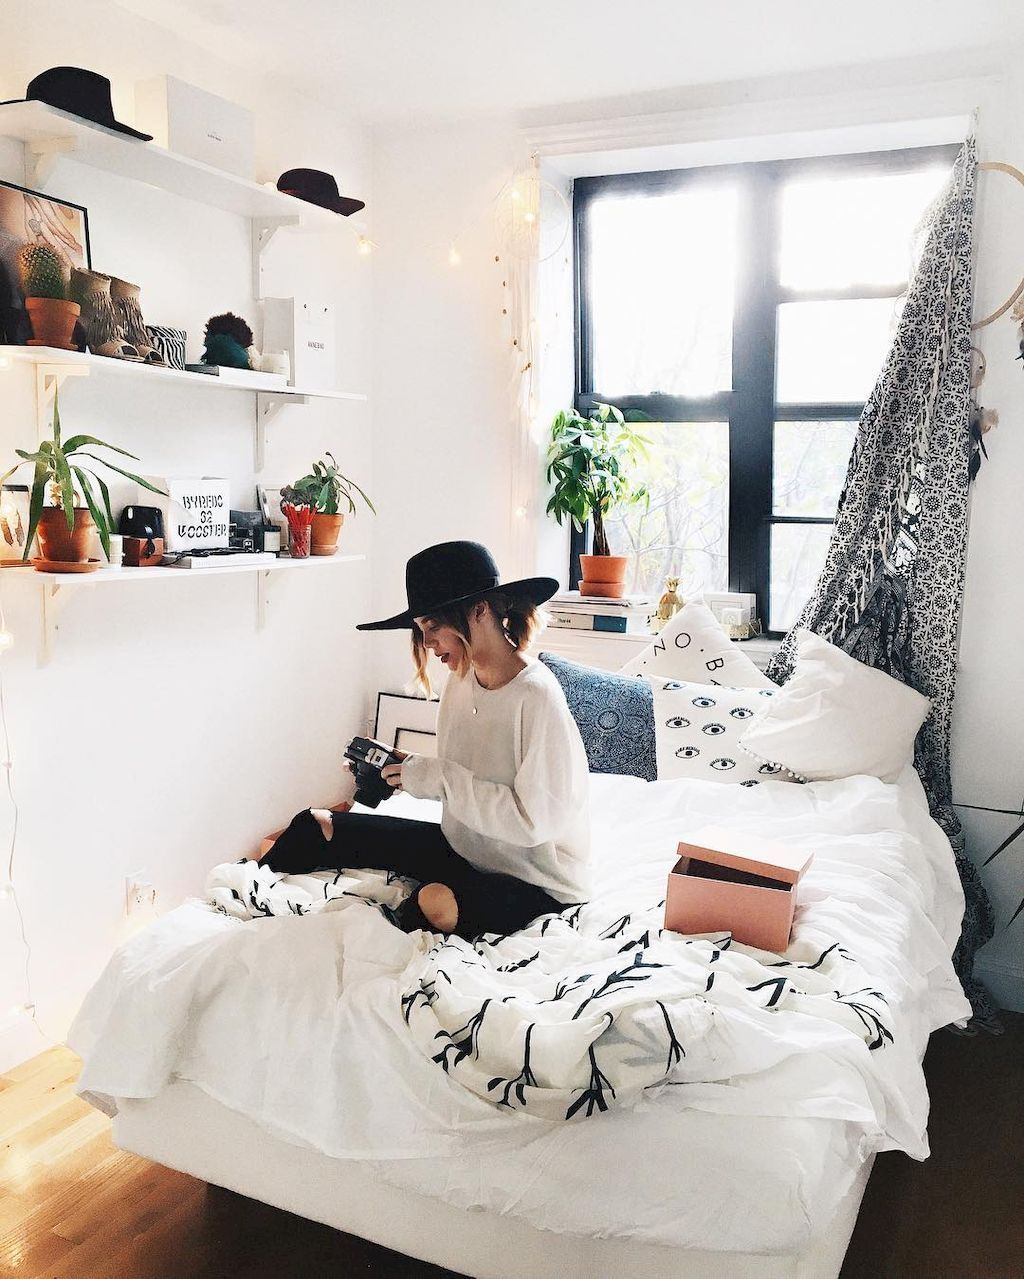 Cool 42 Cute Dorm Room Decorating Ideas On A Budget Https://decoralink.